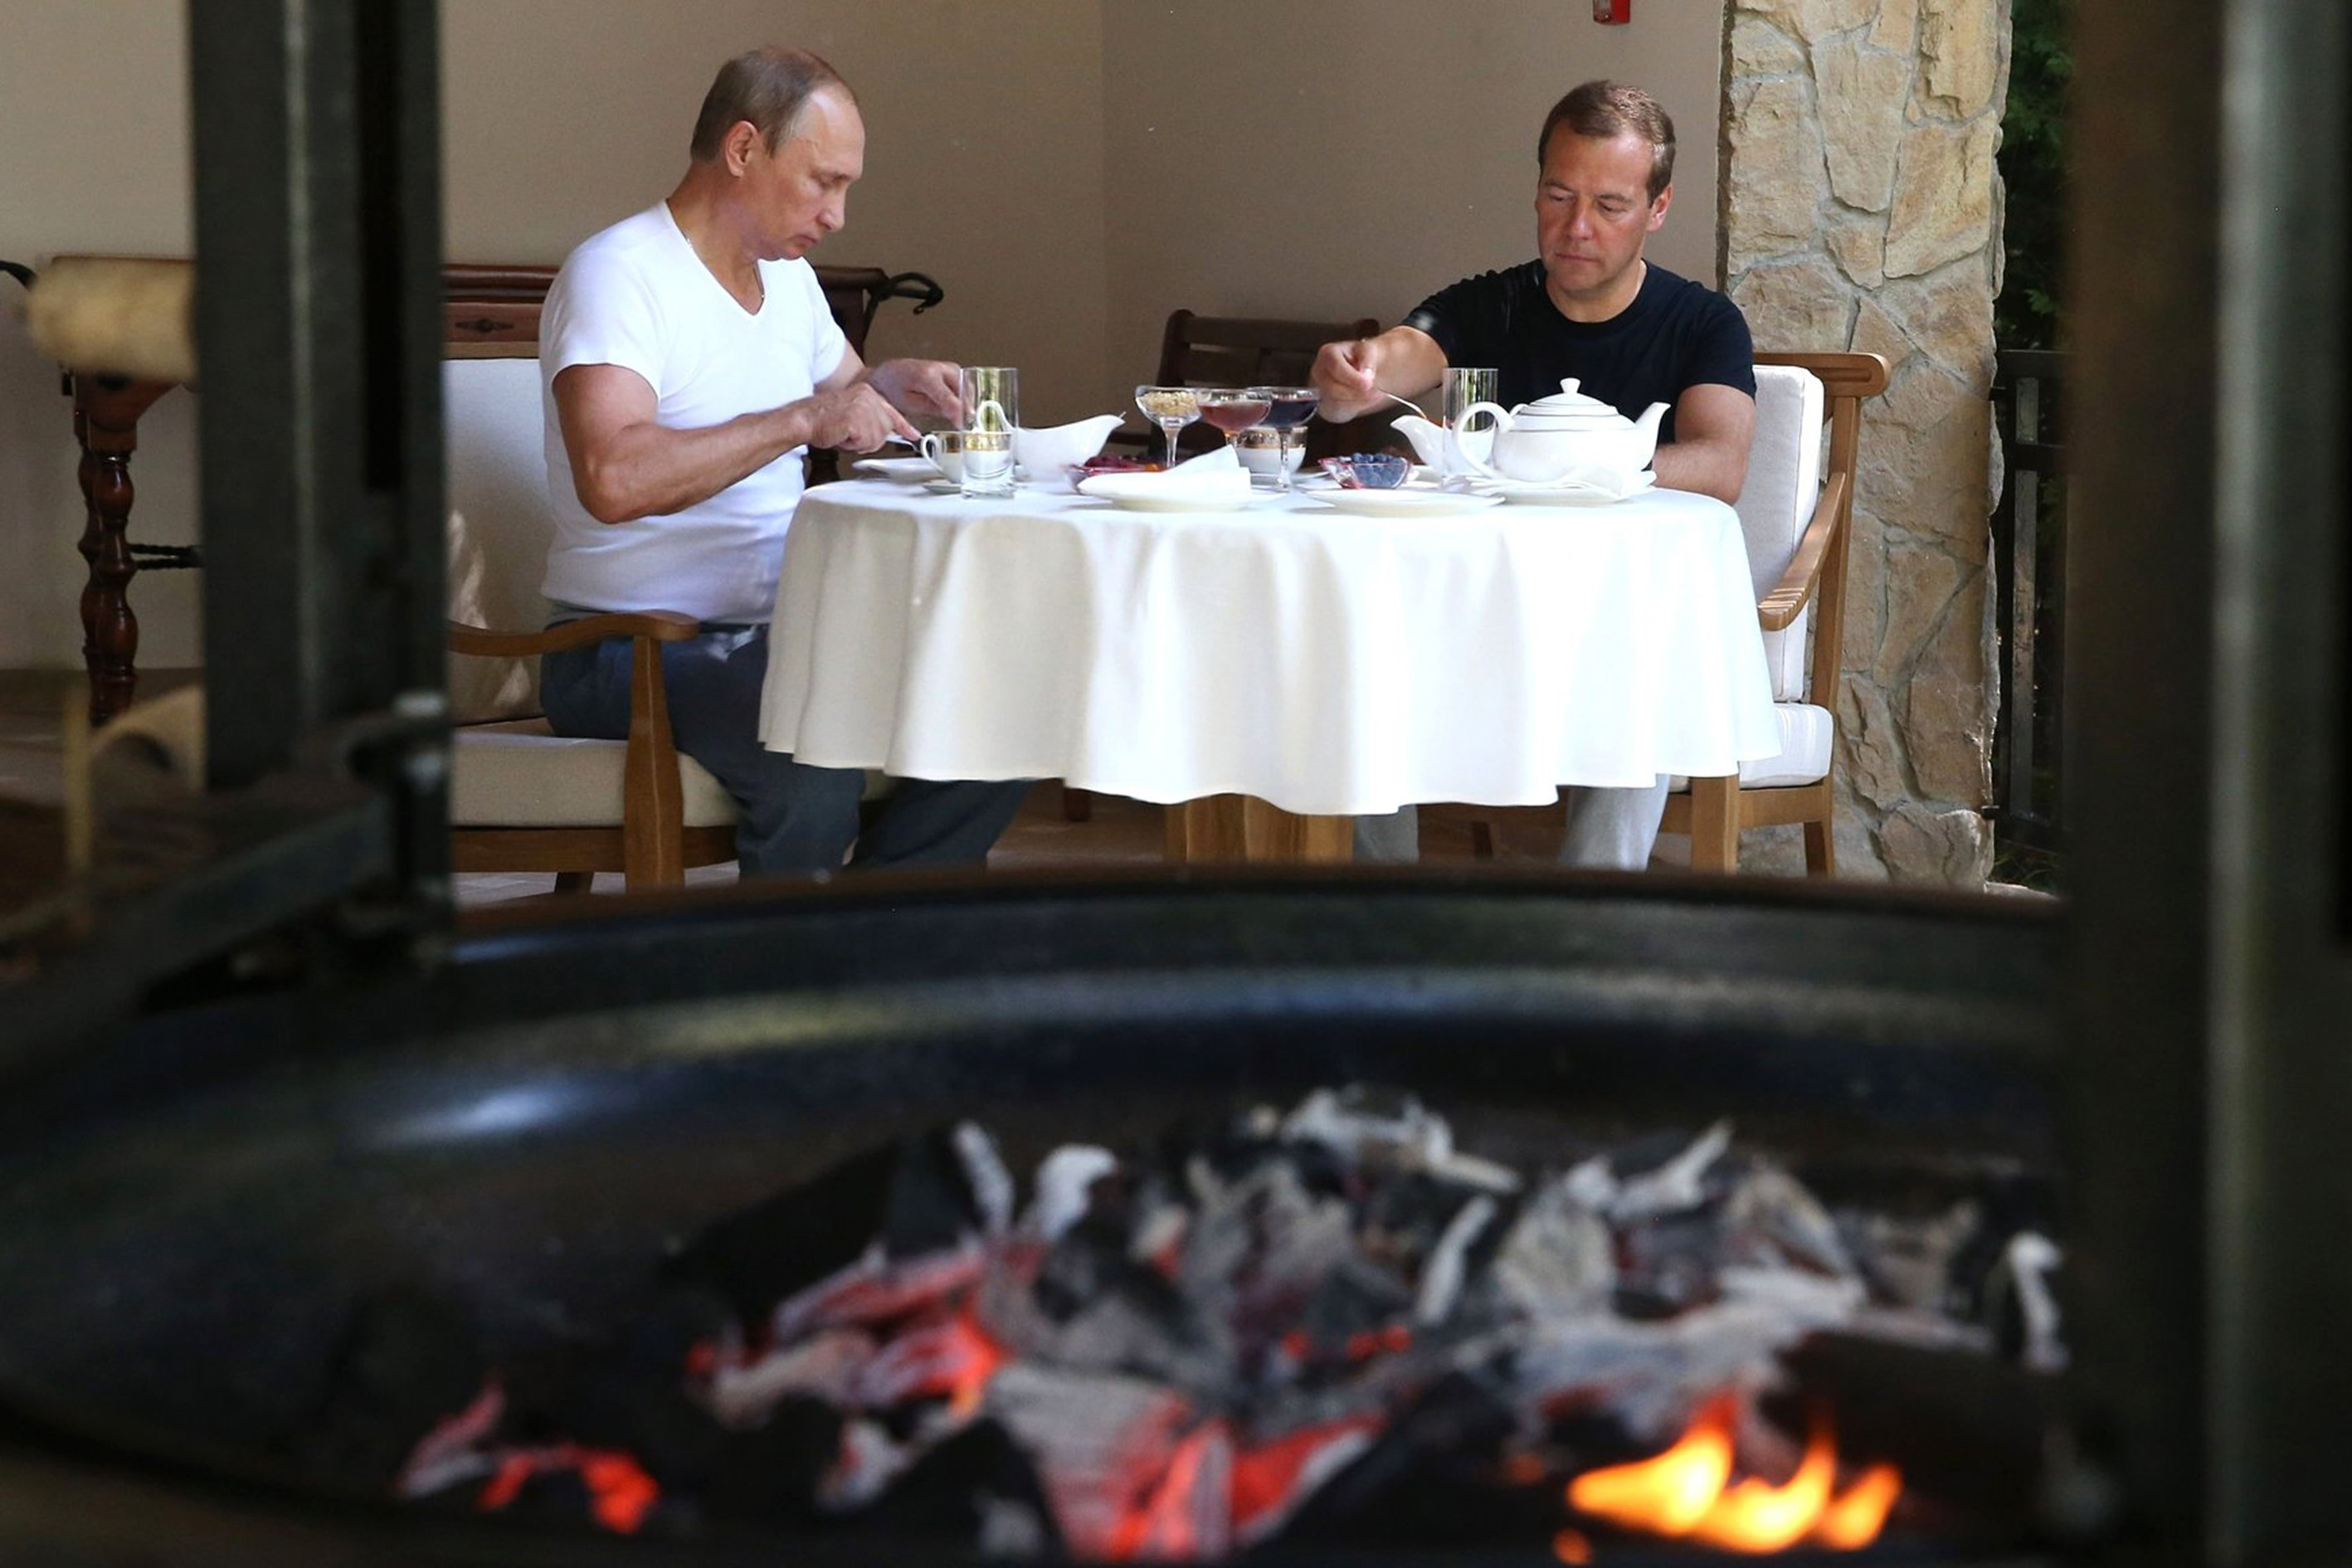 Working Out And Grilling With Putin In Photos Foreign Policy